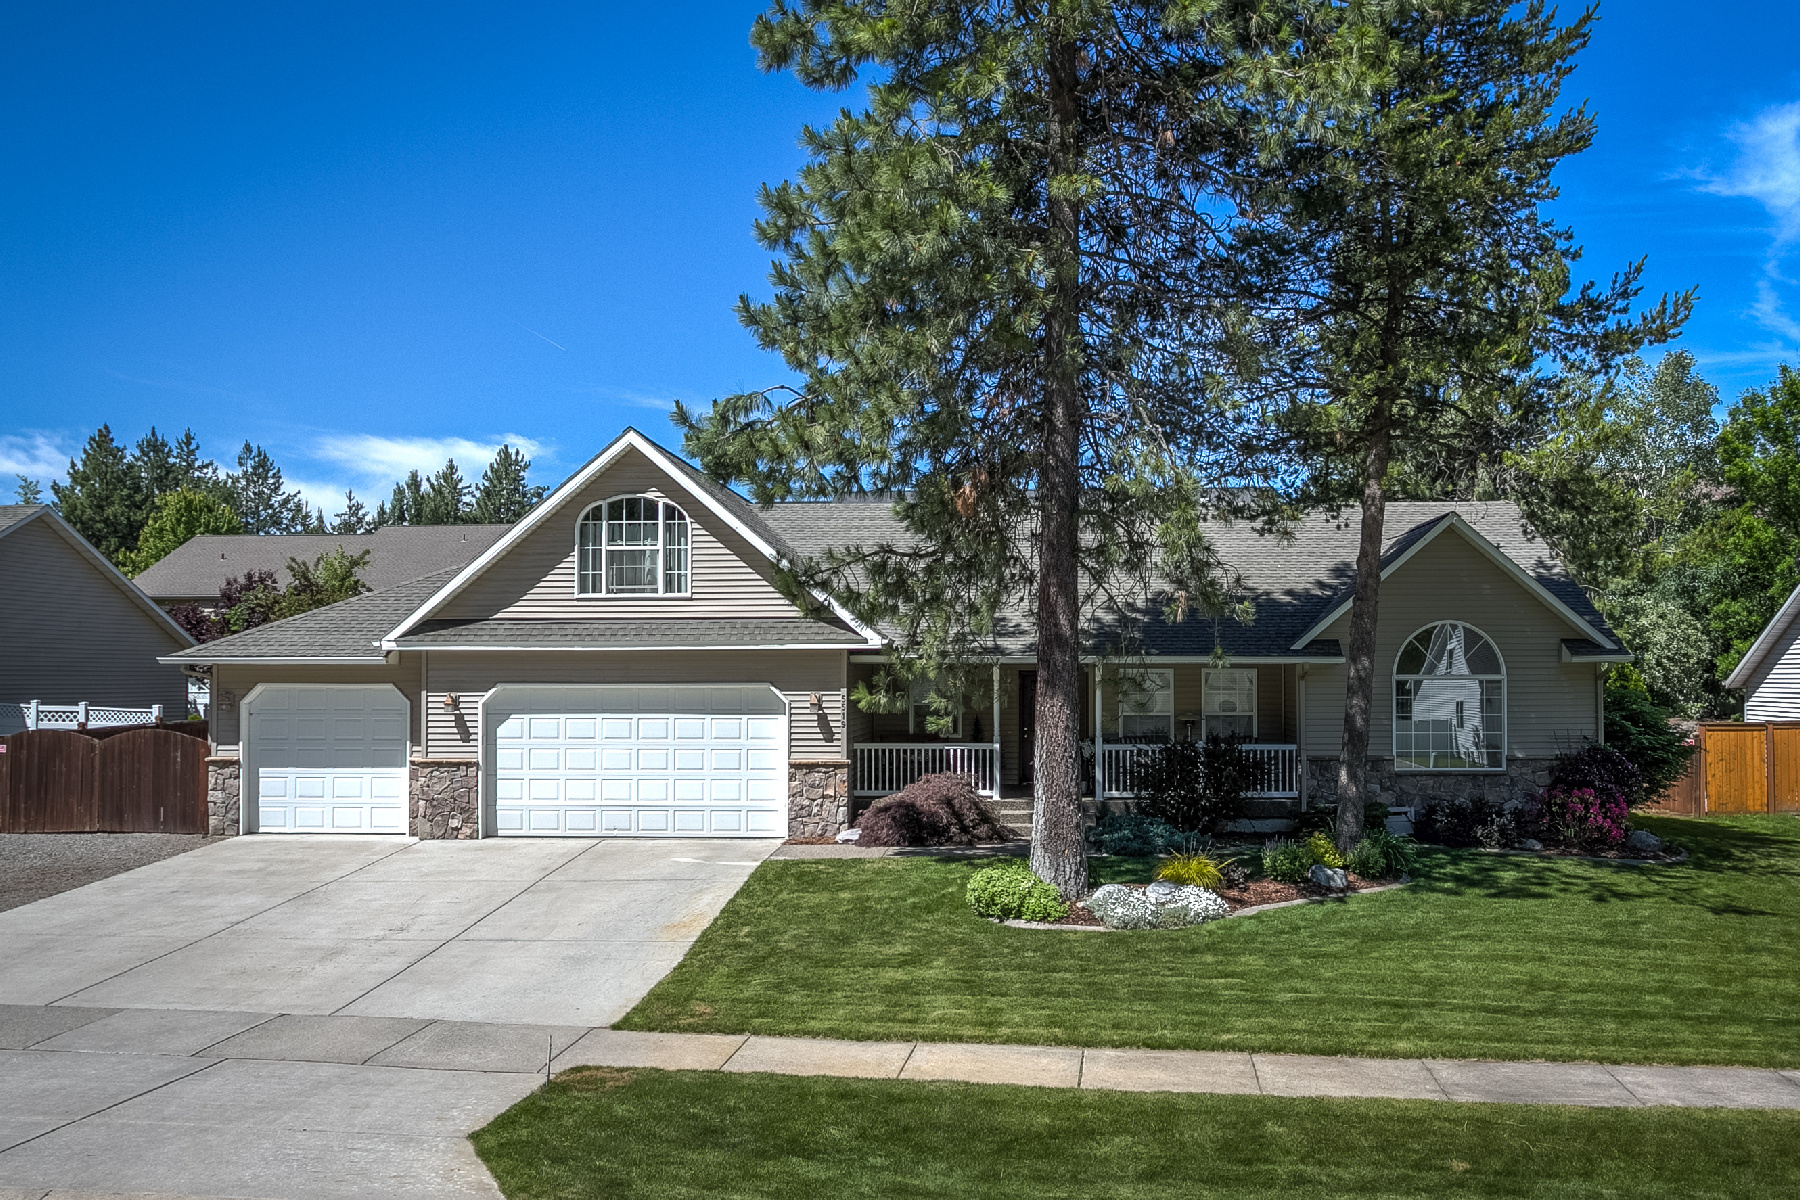 Single Family Home for Sale at Cumberland Meadows 5519 n Wade Coeur D Alene, Idaho, 83815 United States